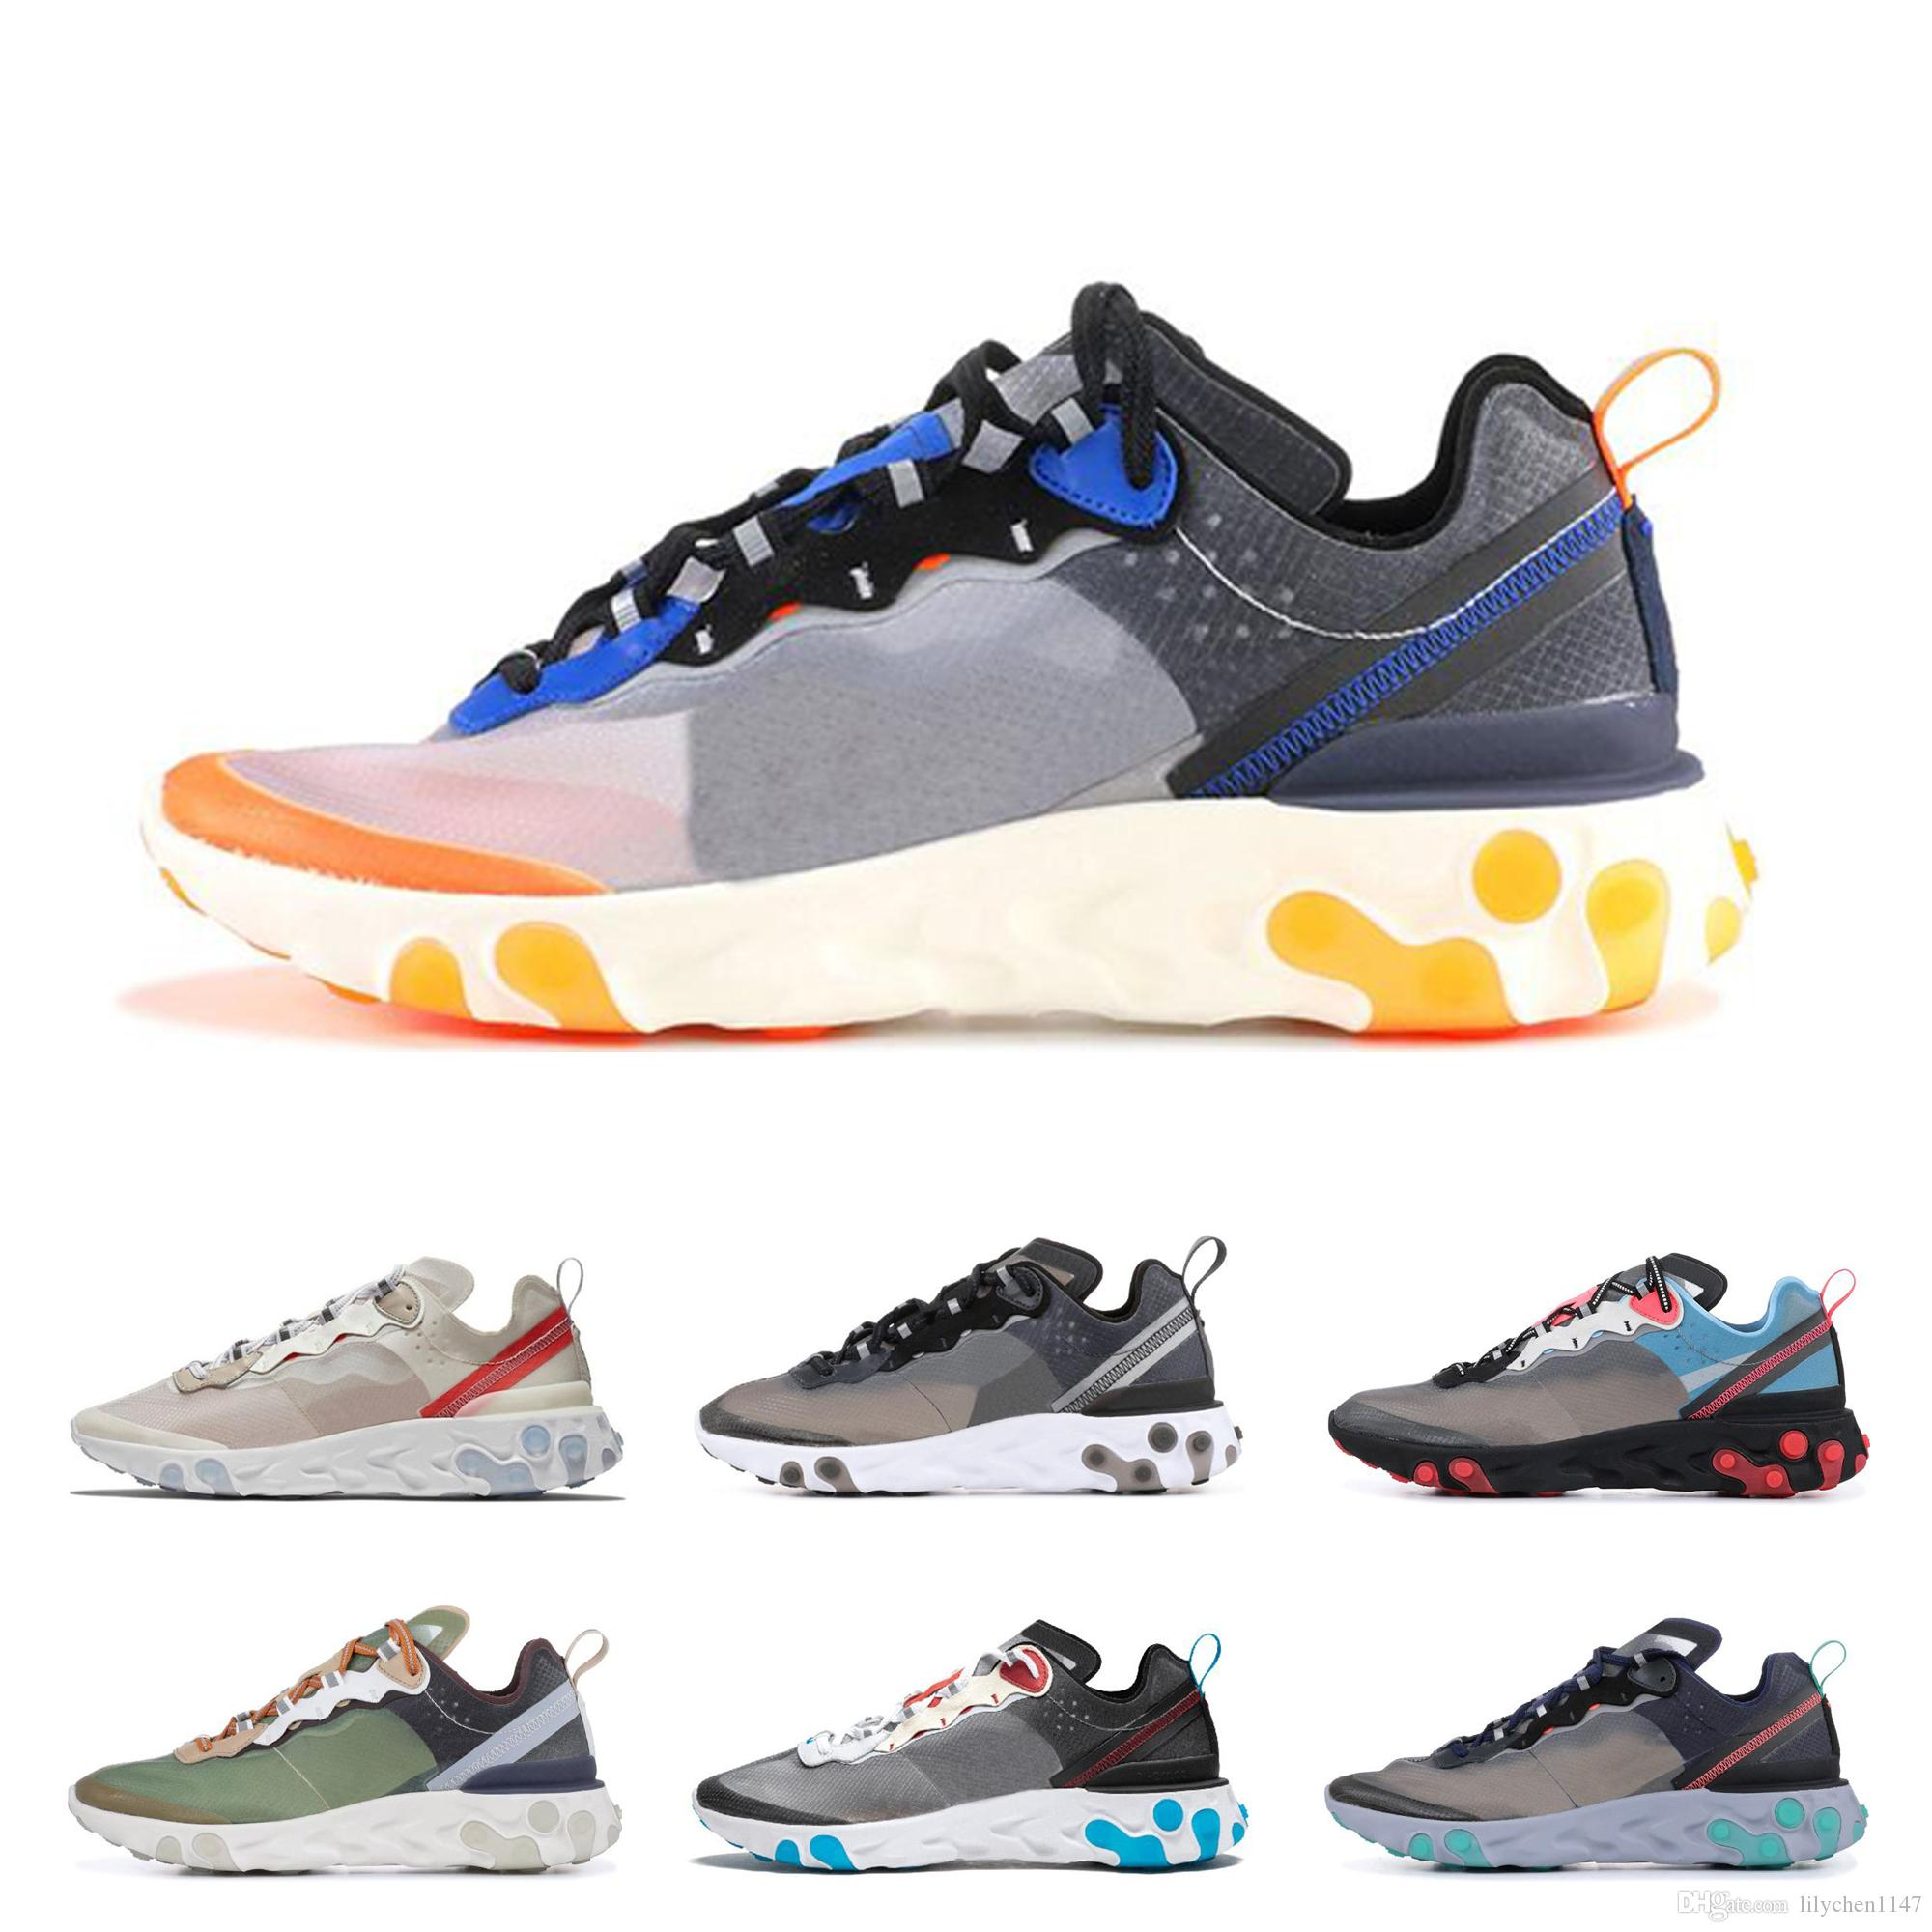 3ff2a0863ad Epic React Element 87 Mens Designer Running Shoes 2019 Women Casual Air  Trainers Outdoor Best Dress Hiking Breathable Sports Sneakers Track Shoes  Best ...